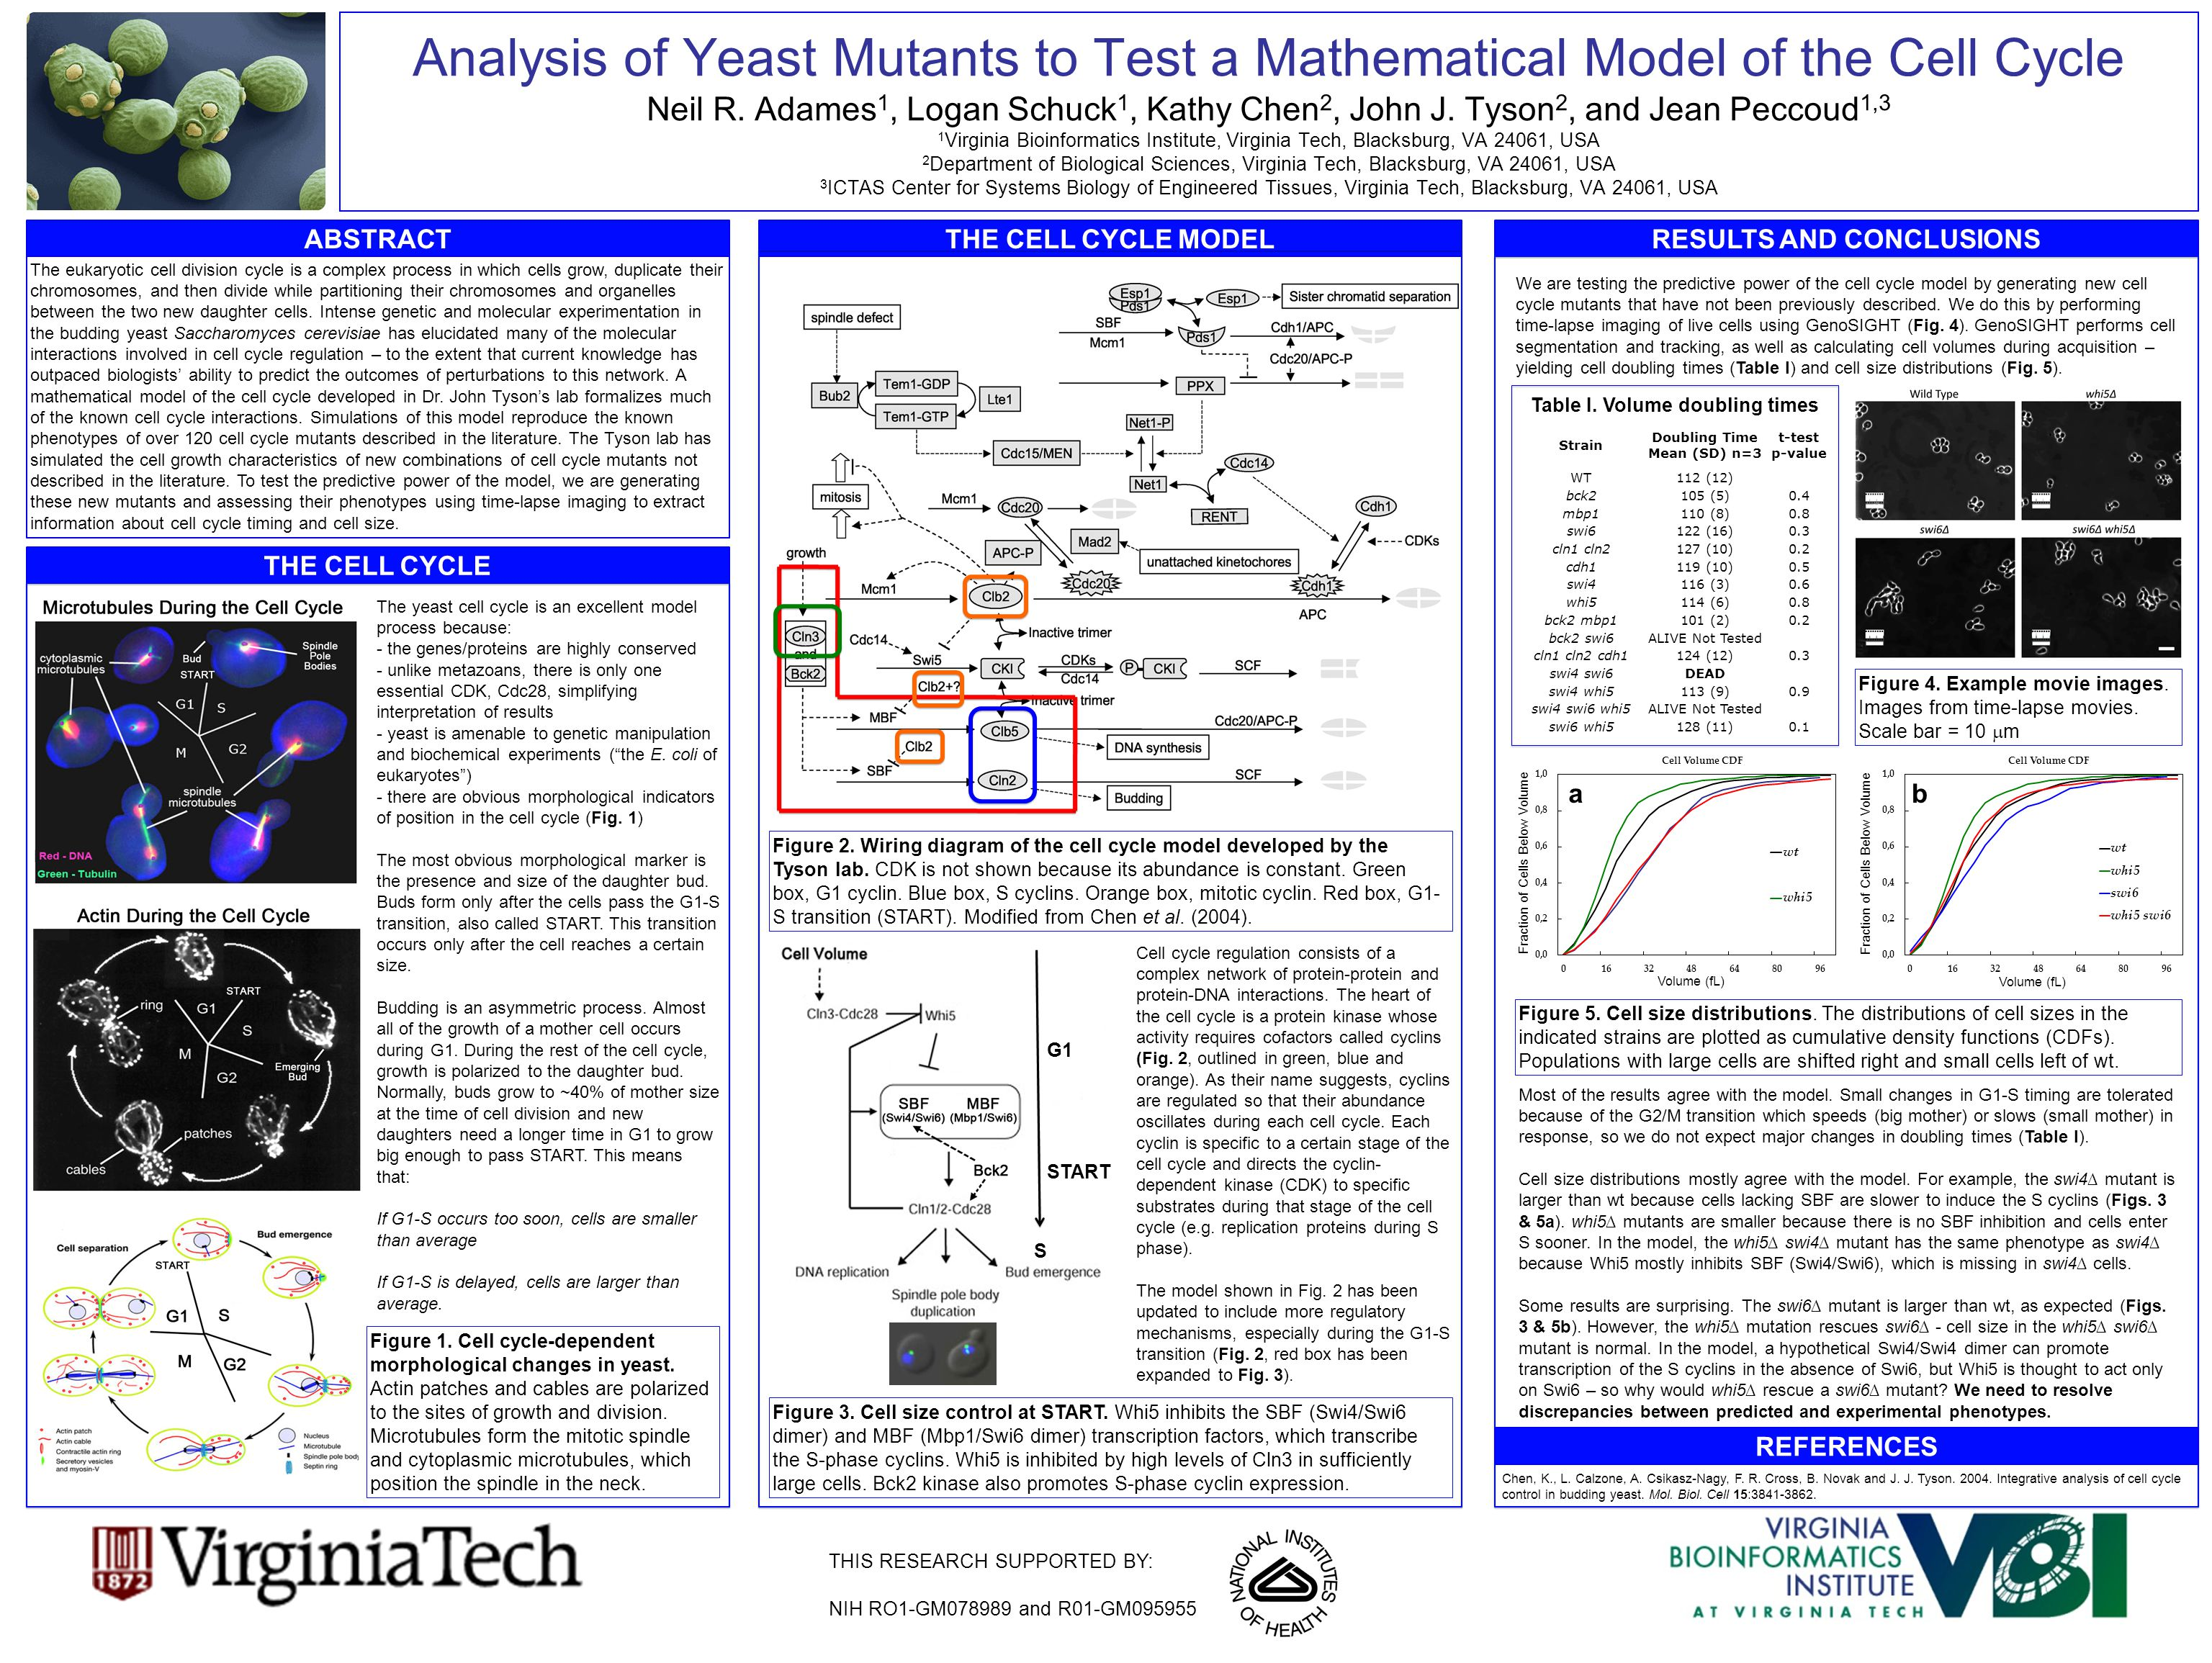 Analysis of Yeast Mutants to Test a Mathematical Model of the Cell Cycle Neil R.